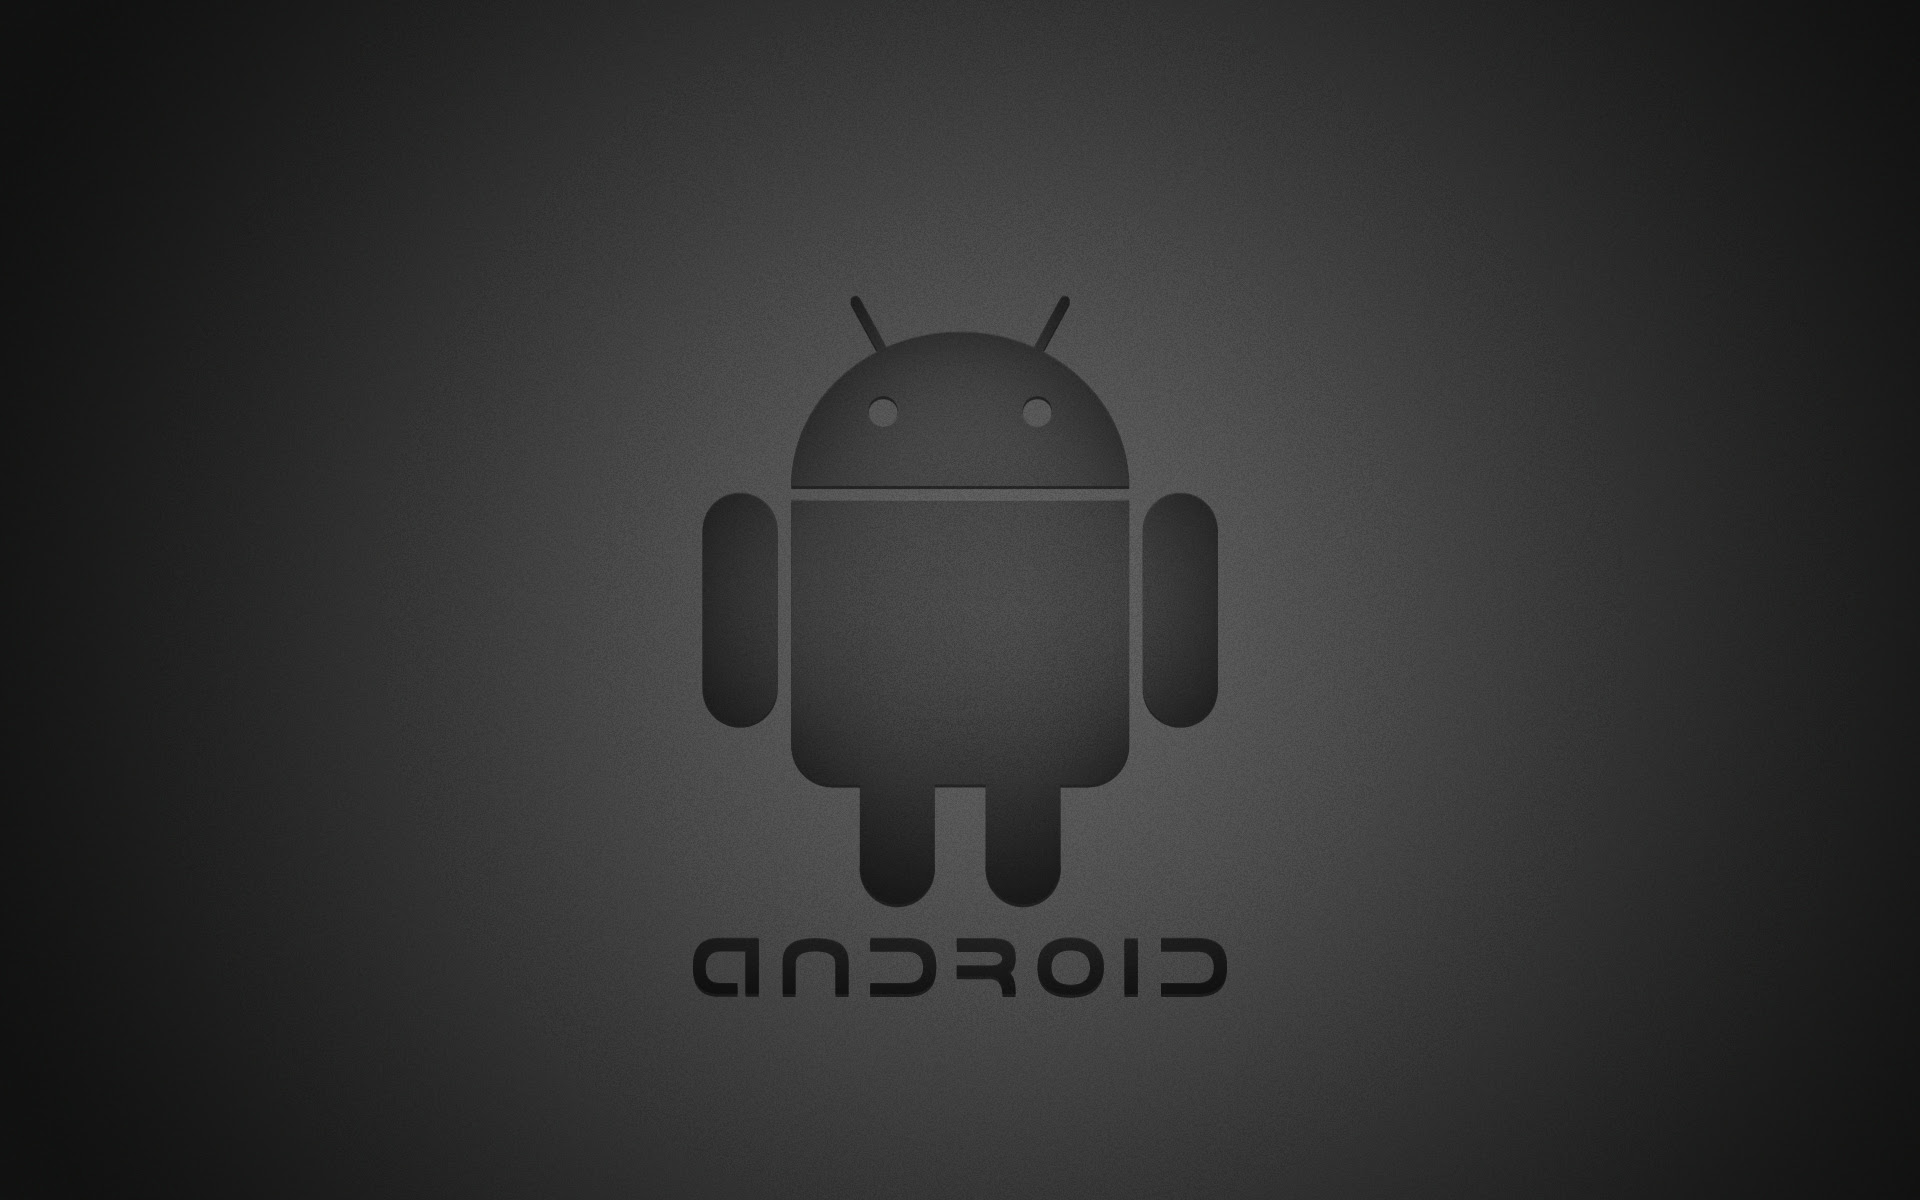 wallpaper android